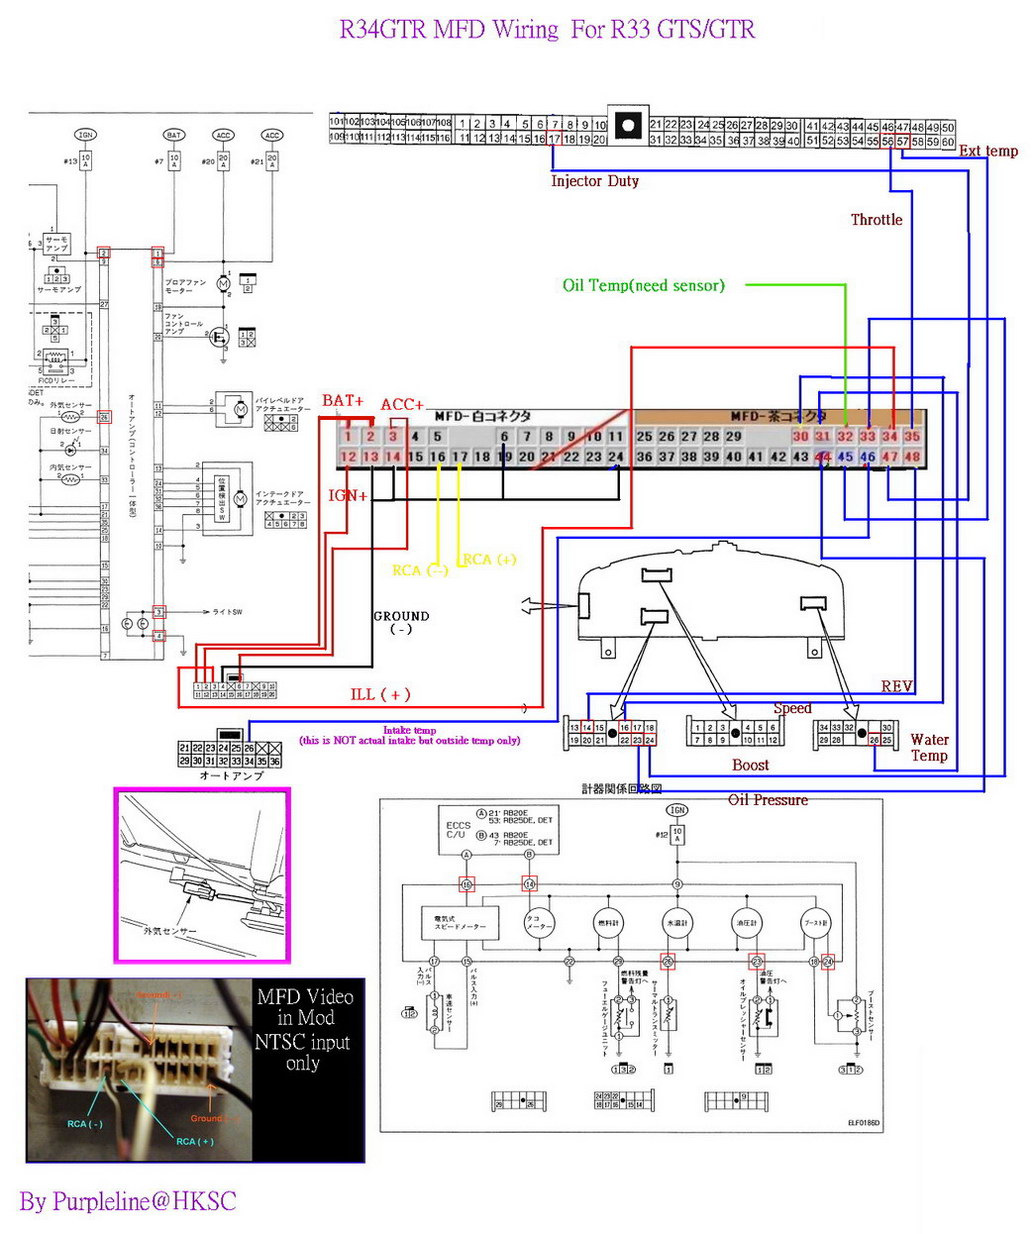 r33 ac wiring diagram free download wiring diagram xwiaw ac plug rh xwiaw us R32 GTR GTR R30